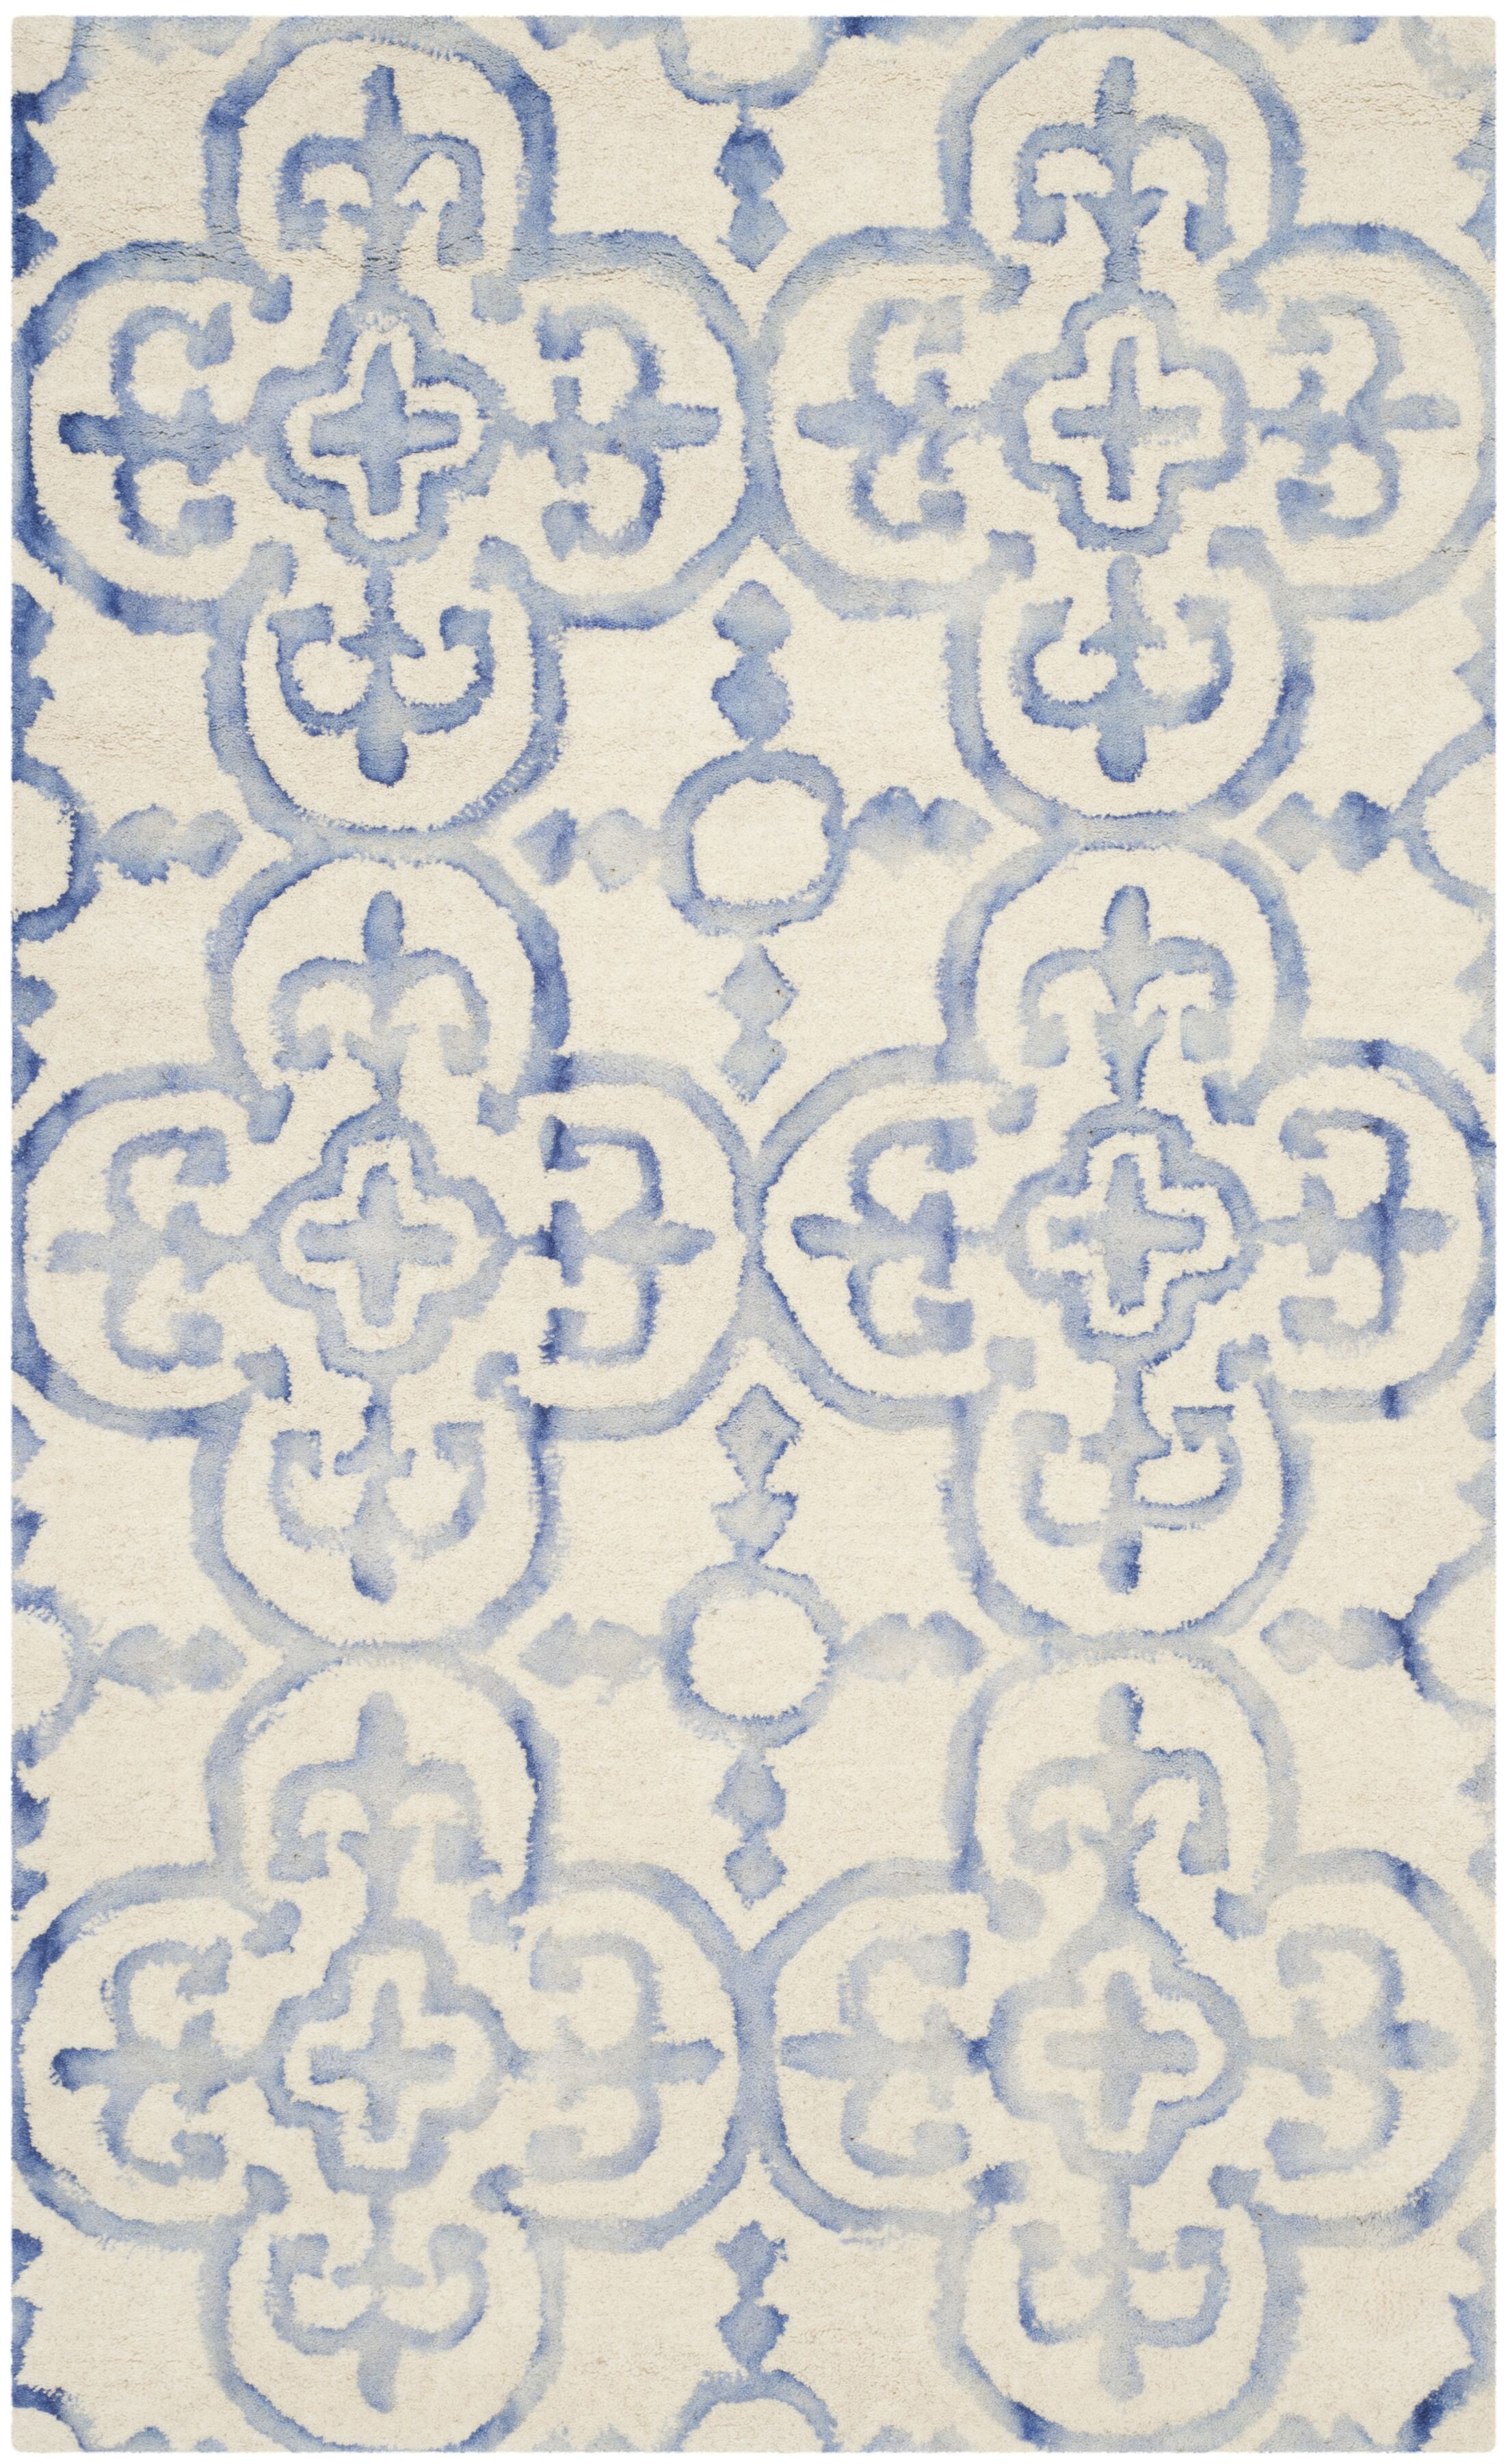 Carter Hand-Tufted Ivory/Blue Area Rug Rug Size: Rectangle 3' x 5'